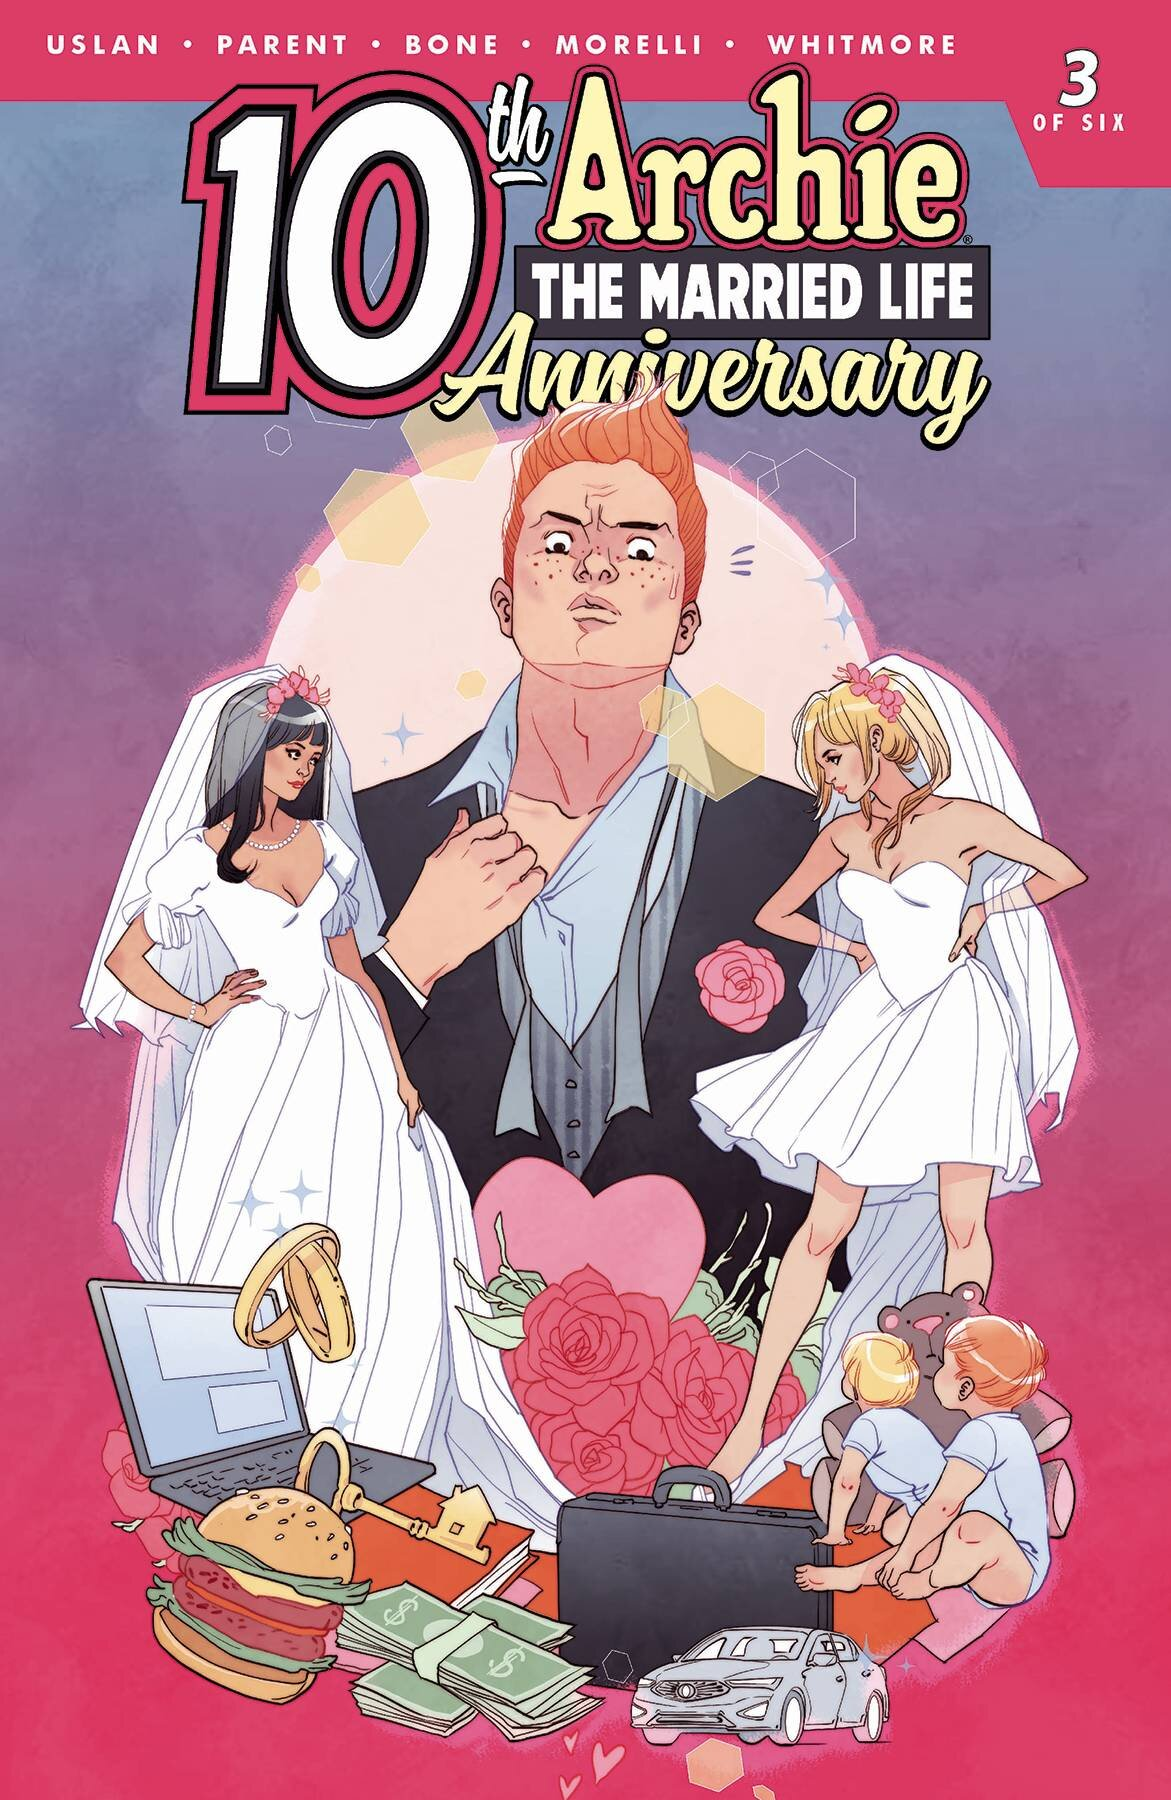 ARCHIE MARRIED LIFE 10 YEARS LATER 3 CVR C SAUVAGE.jpg